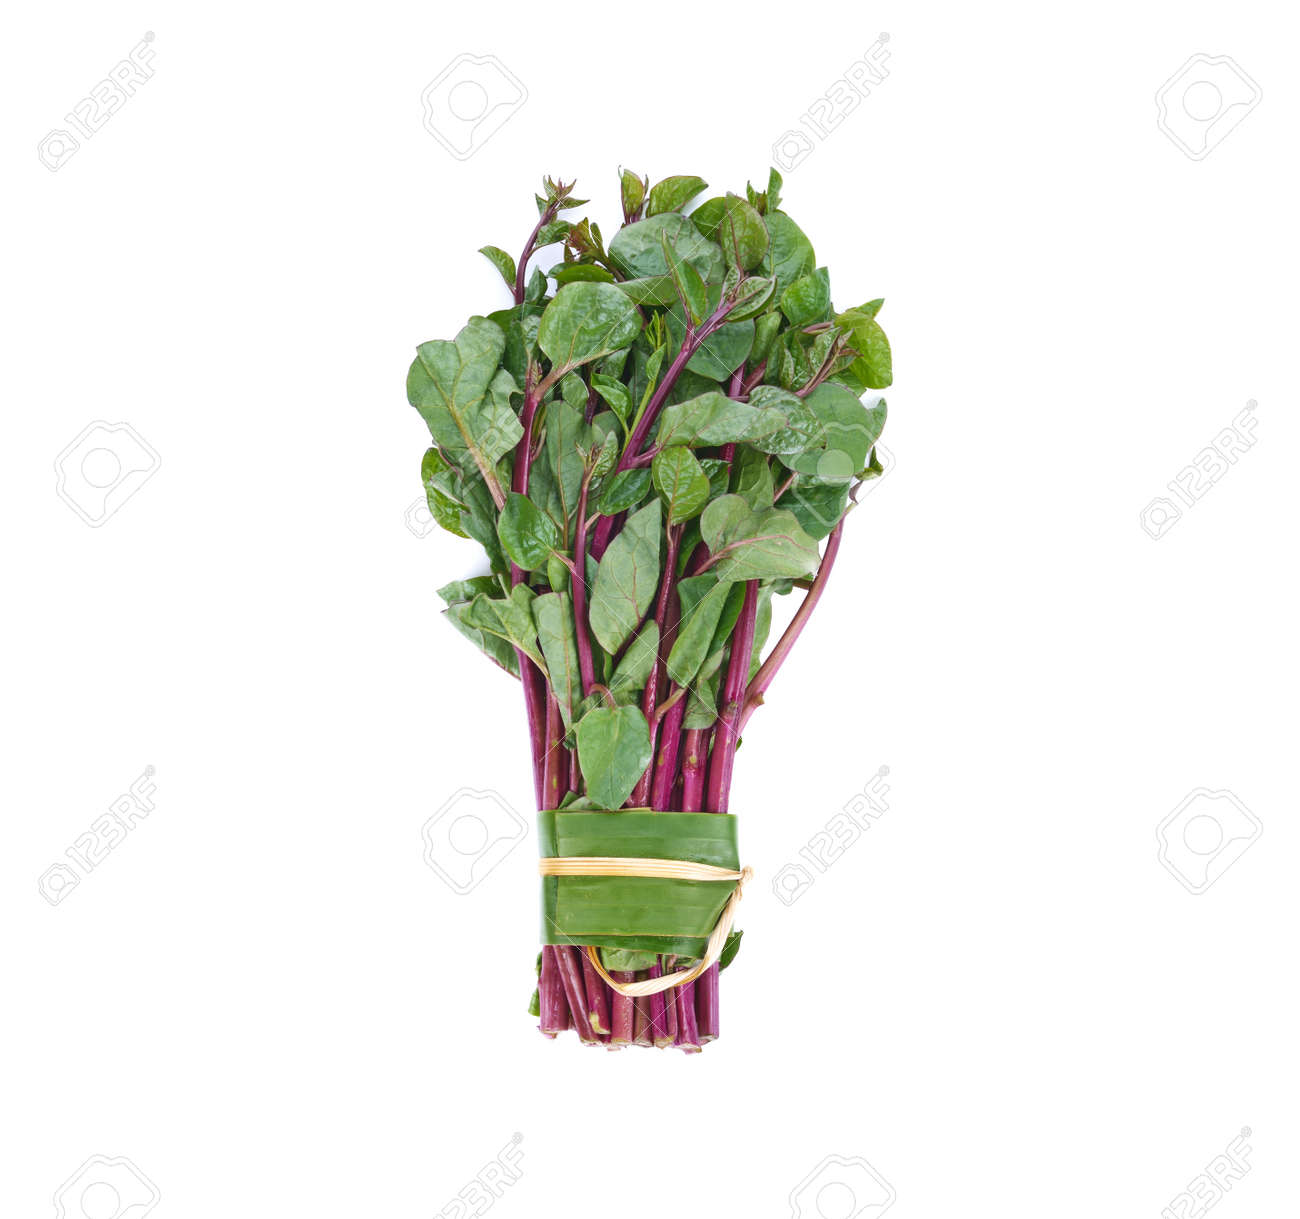 Ceylon spinach or Malabar spinach isolated on white background - 169847862